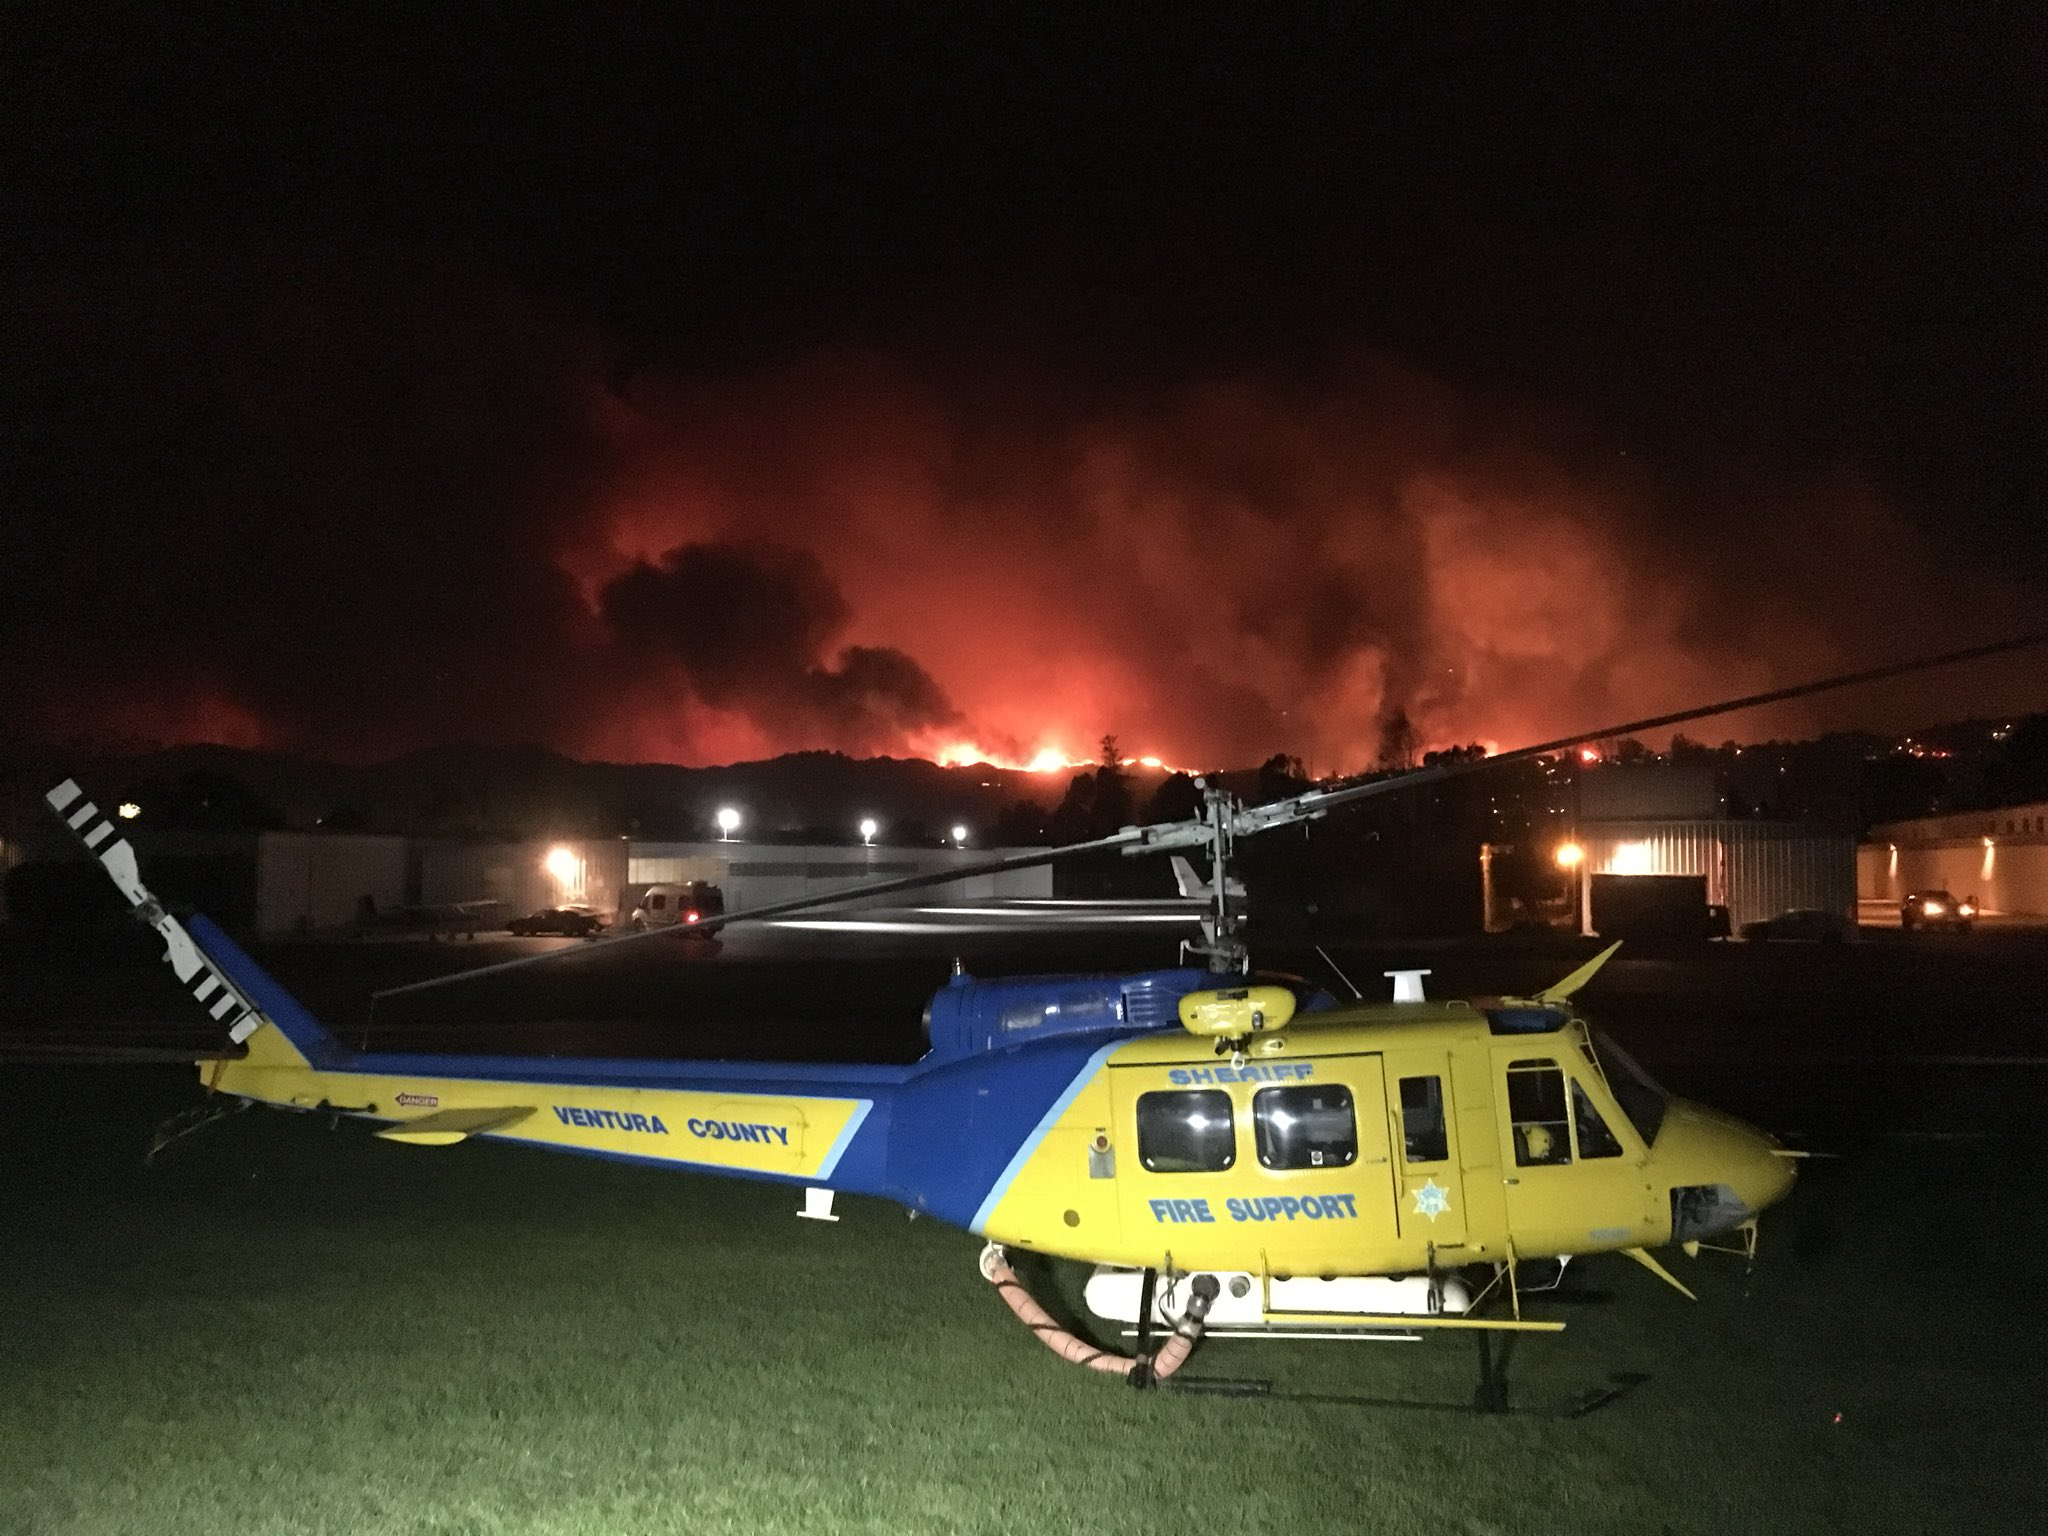 "<div class=""meta image-caption""><div class=""origin-logo origin-image kgo""><span>kgo</span></div><span class=""caption-text"">Helicopter forced to land  at Santa Paula Airport due to 50 +MPH winds. (VenturaCoAirUnit)</span></div>"